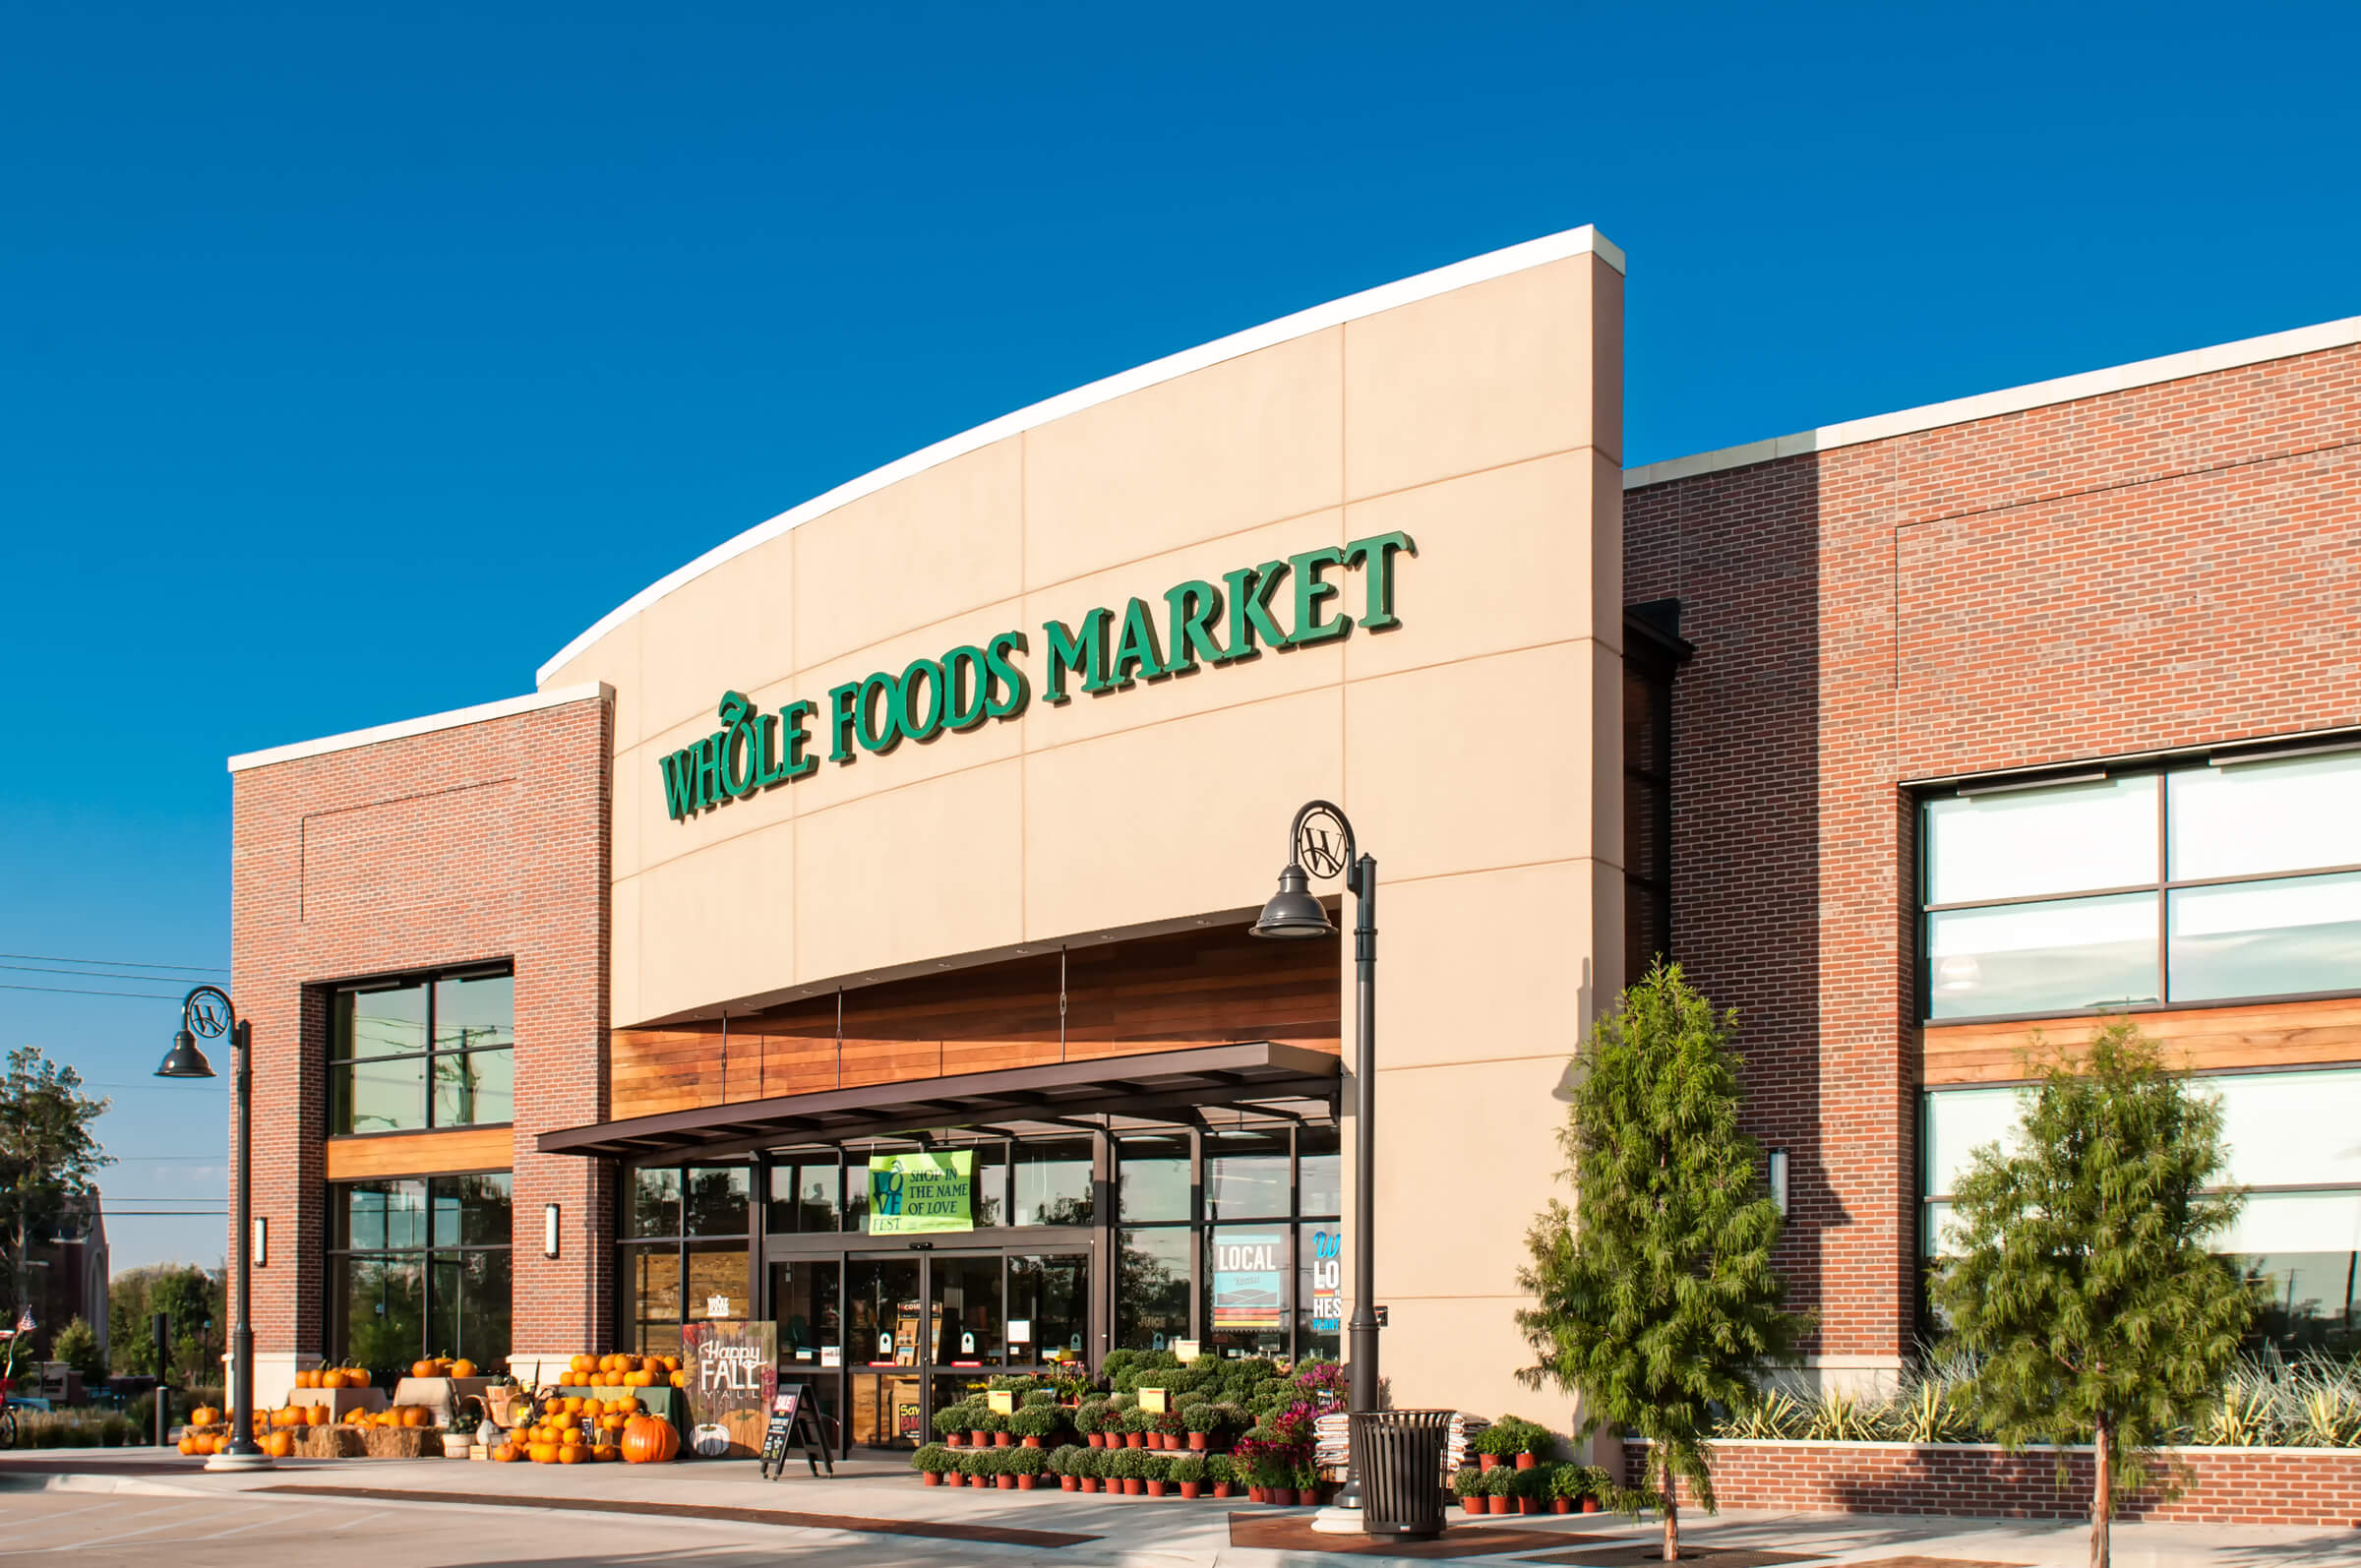 Wichita Kansas Whole Foods